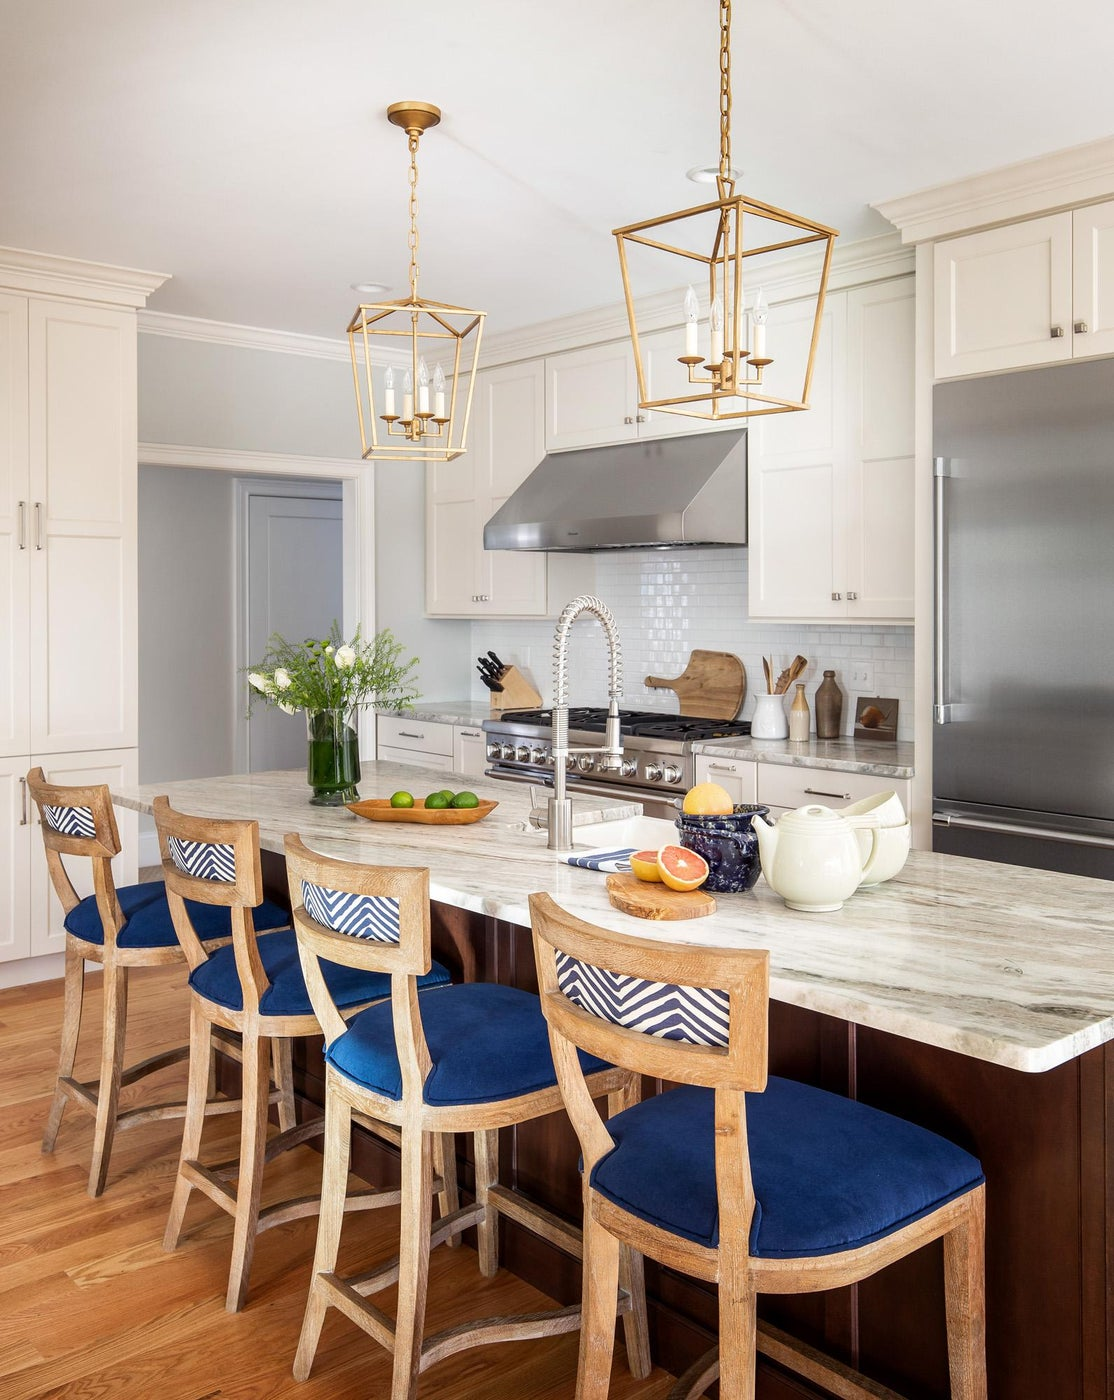 Kitchen island w navy and patterned counter stools, brass lanterns